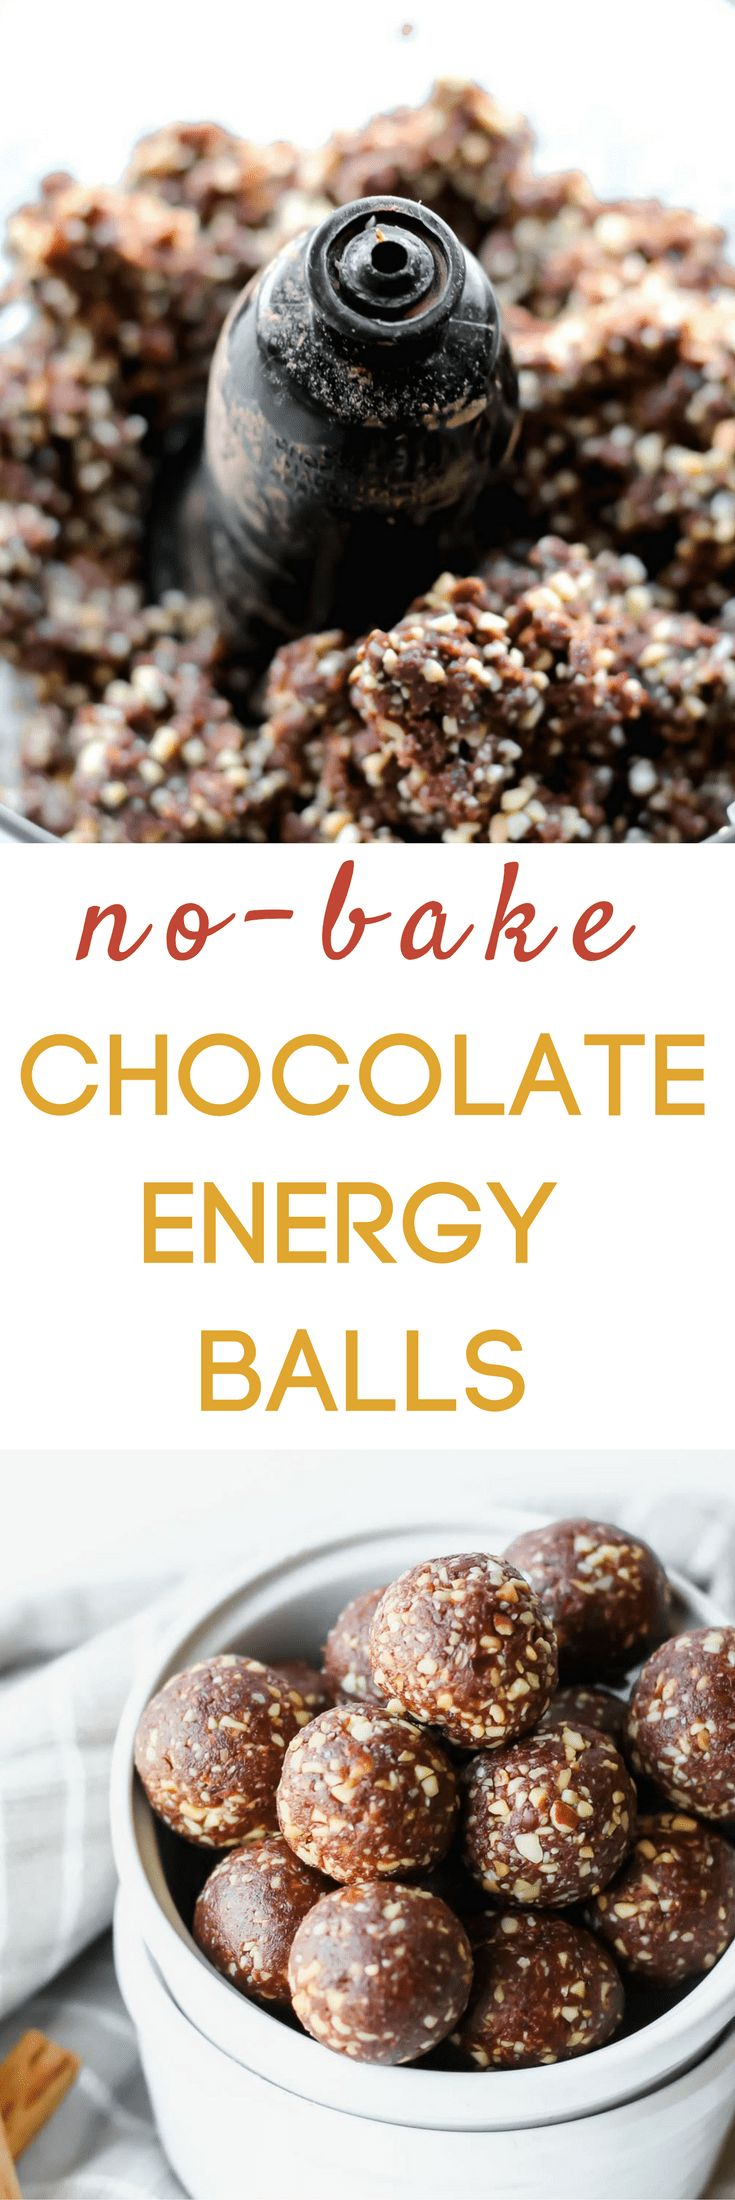 No-bake chocolate energy balls with dates, almonds, and cacao. These bites pack a punch with protein, healthy fats and energy for a busy week!